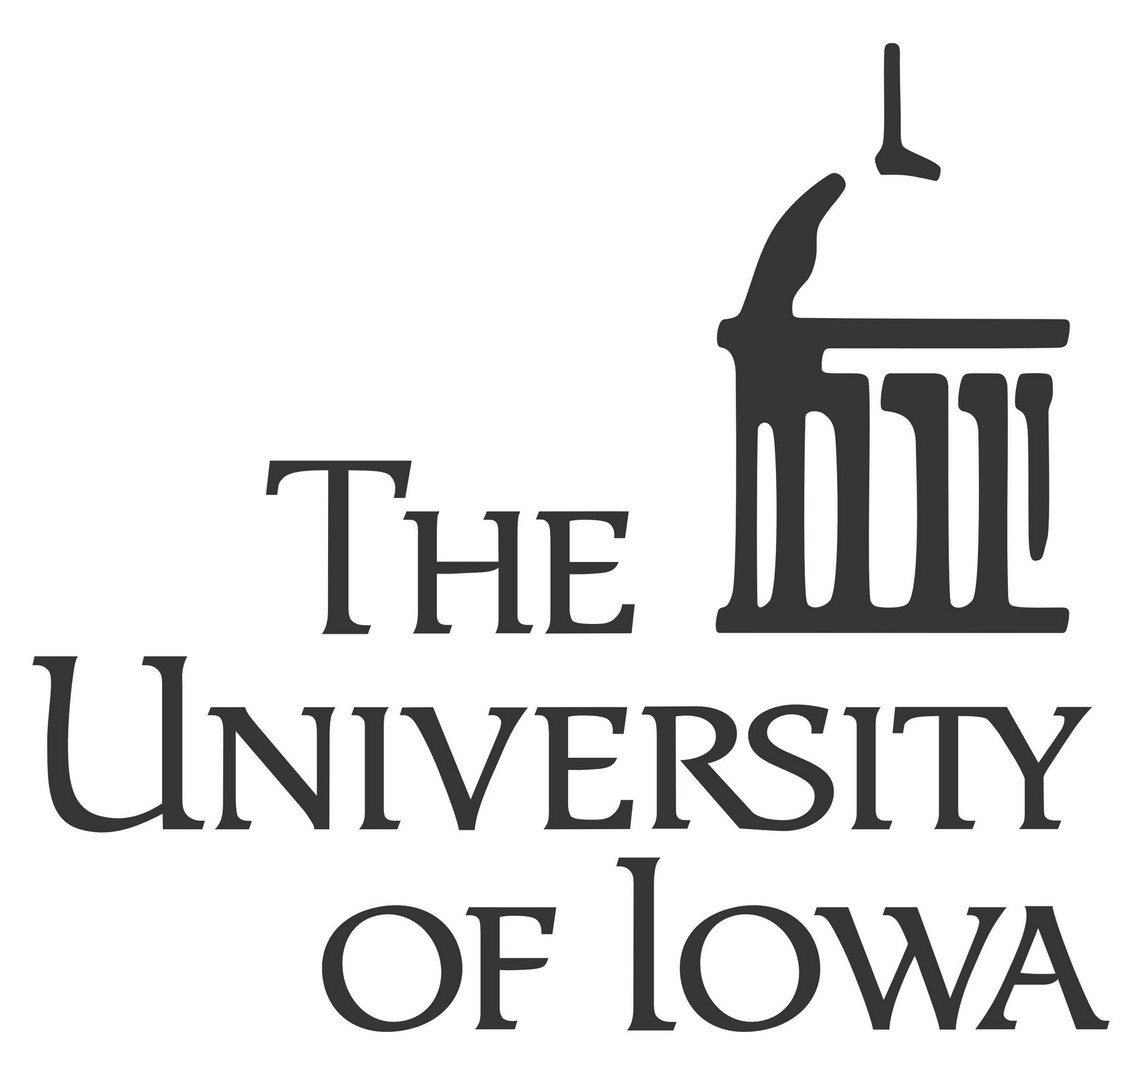 university-of-iowa-logo.jpg